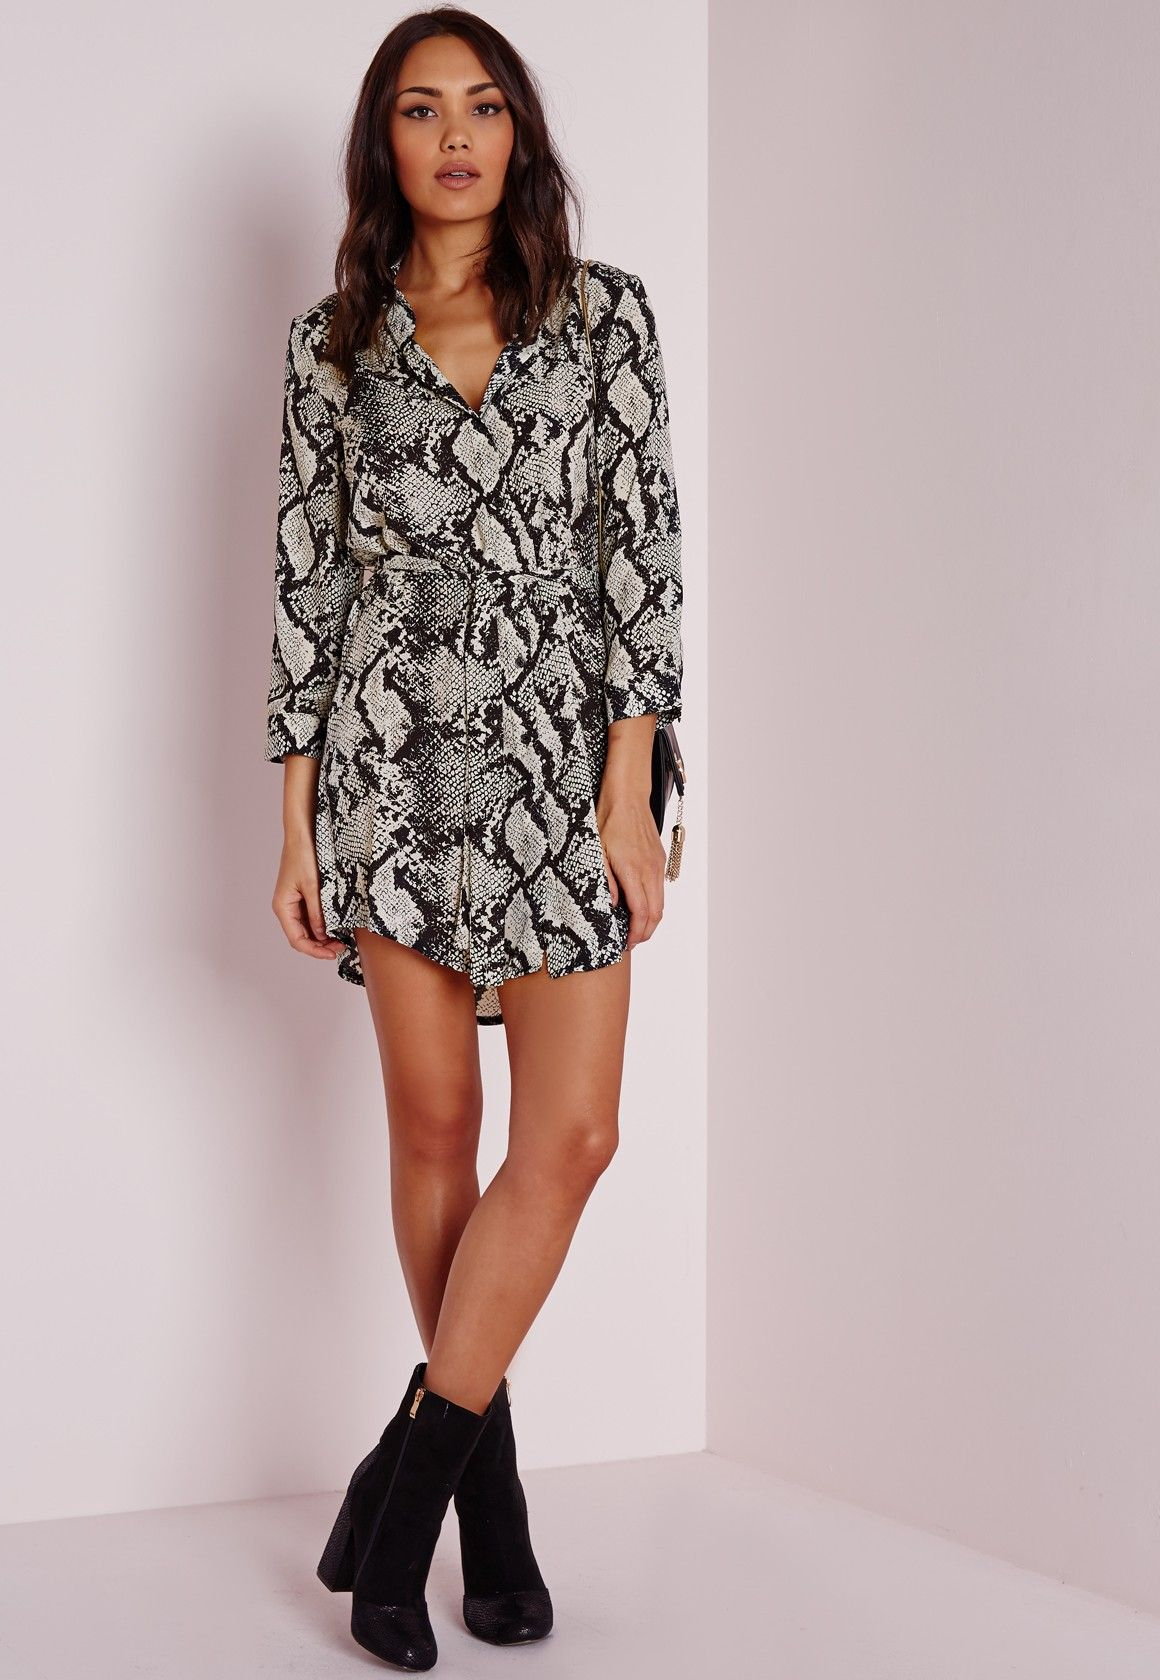 124531f69cd8 Missguided - Long Sleeve Snake Print Shirt Dress Black/Cream ...